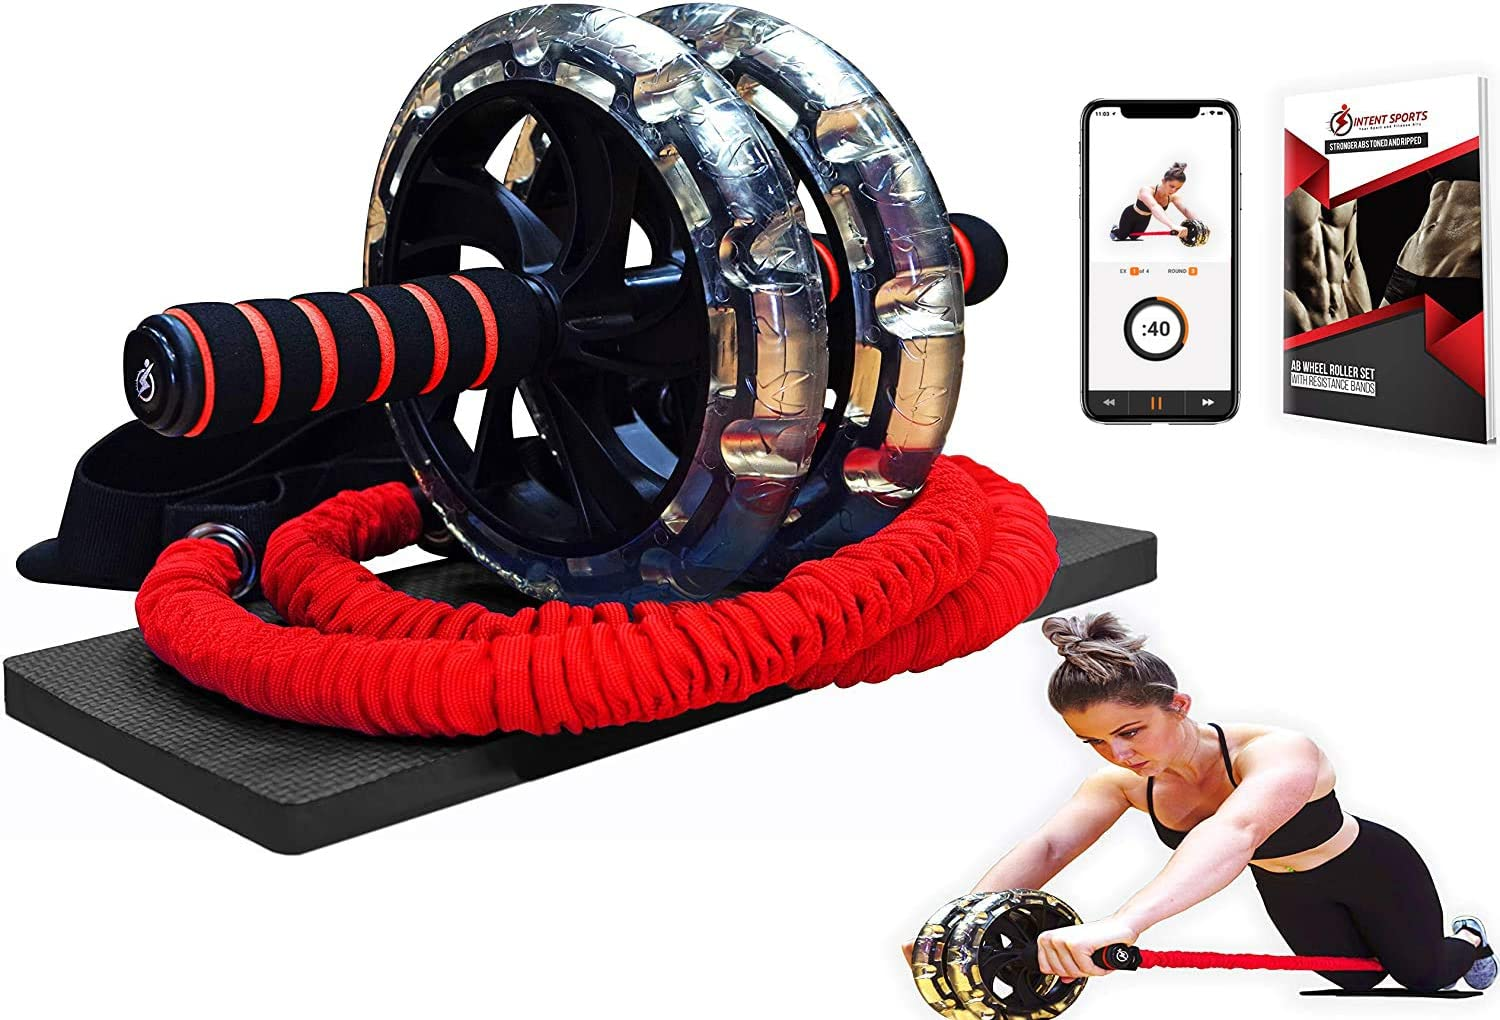 INTENT SPORTS Multi Functional Abdominal Workout Wheel Roller with Large Wheels for Stability